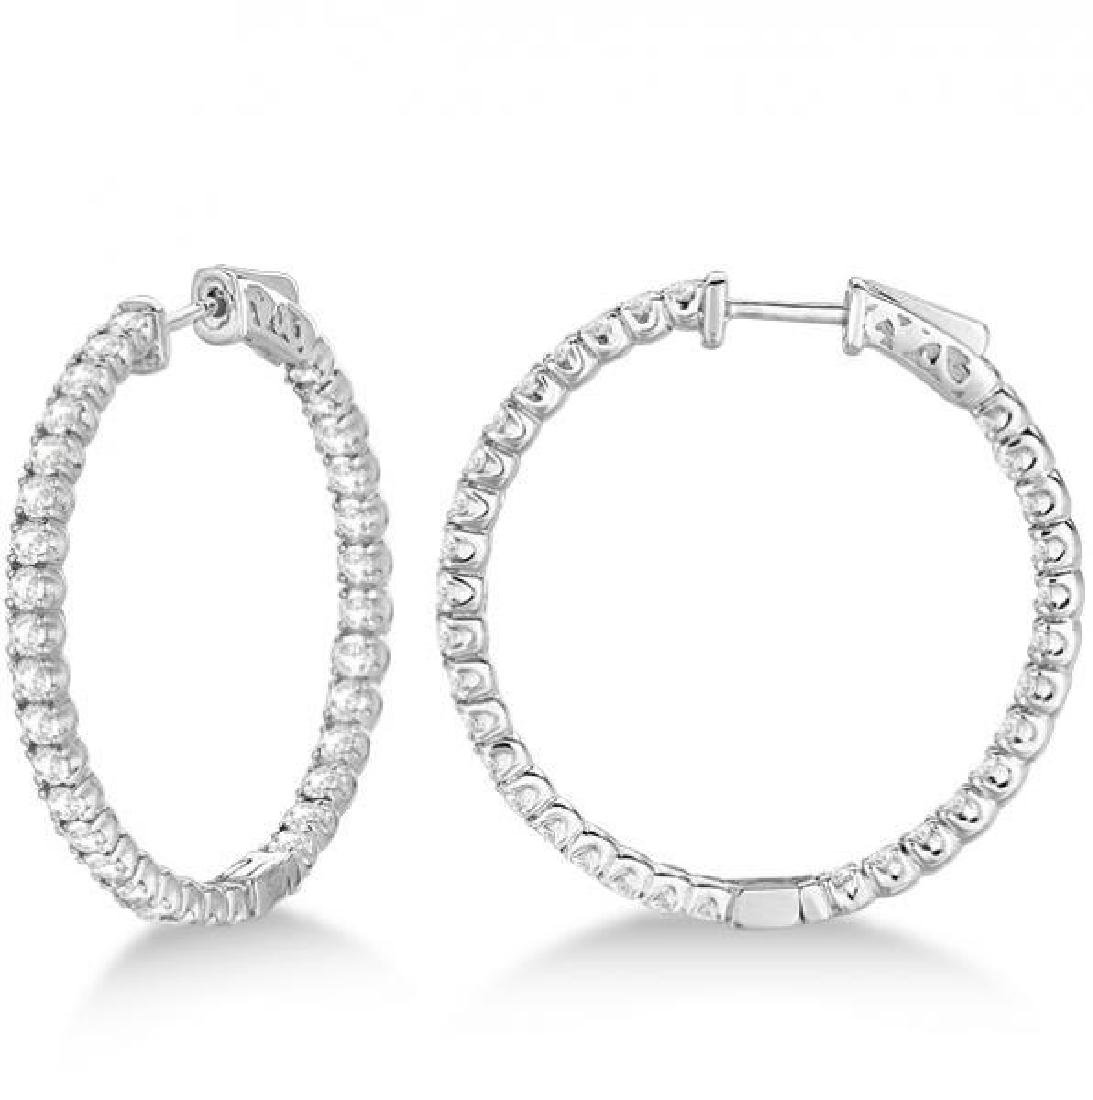 Large Round Diamond Hoop Earrings 14k White Gold (3.25c